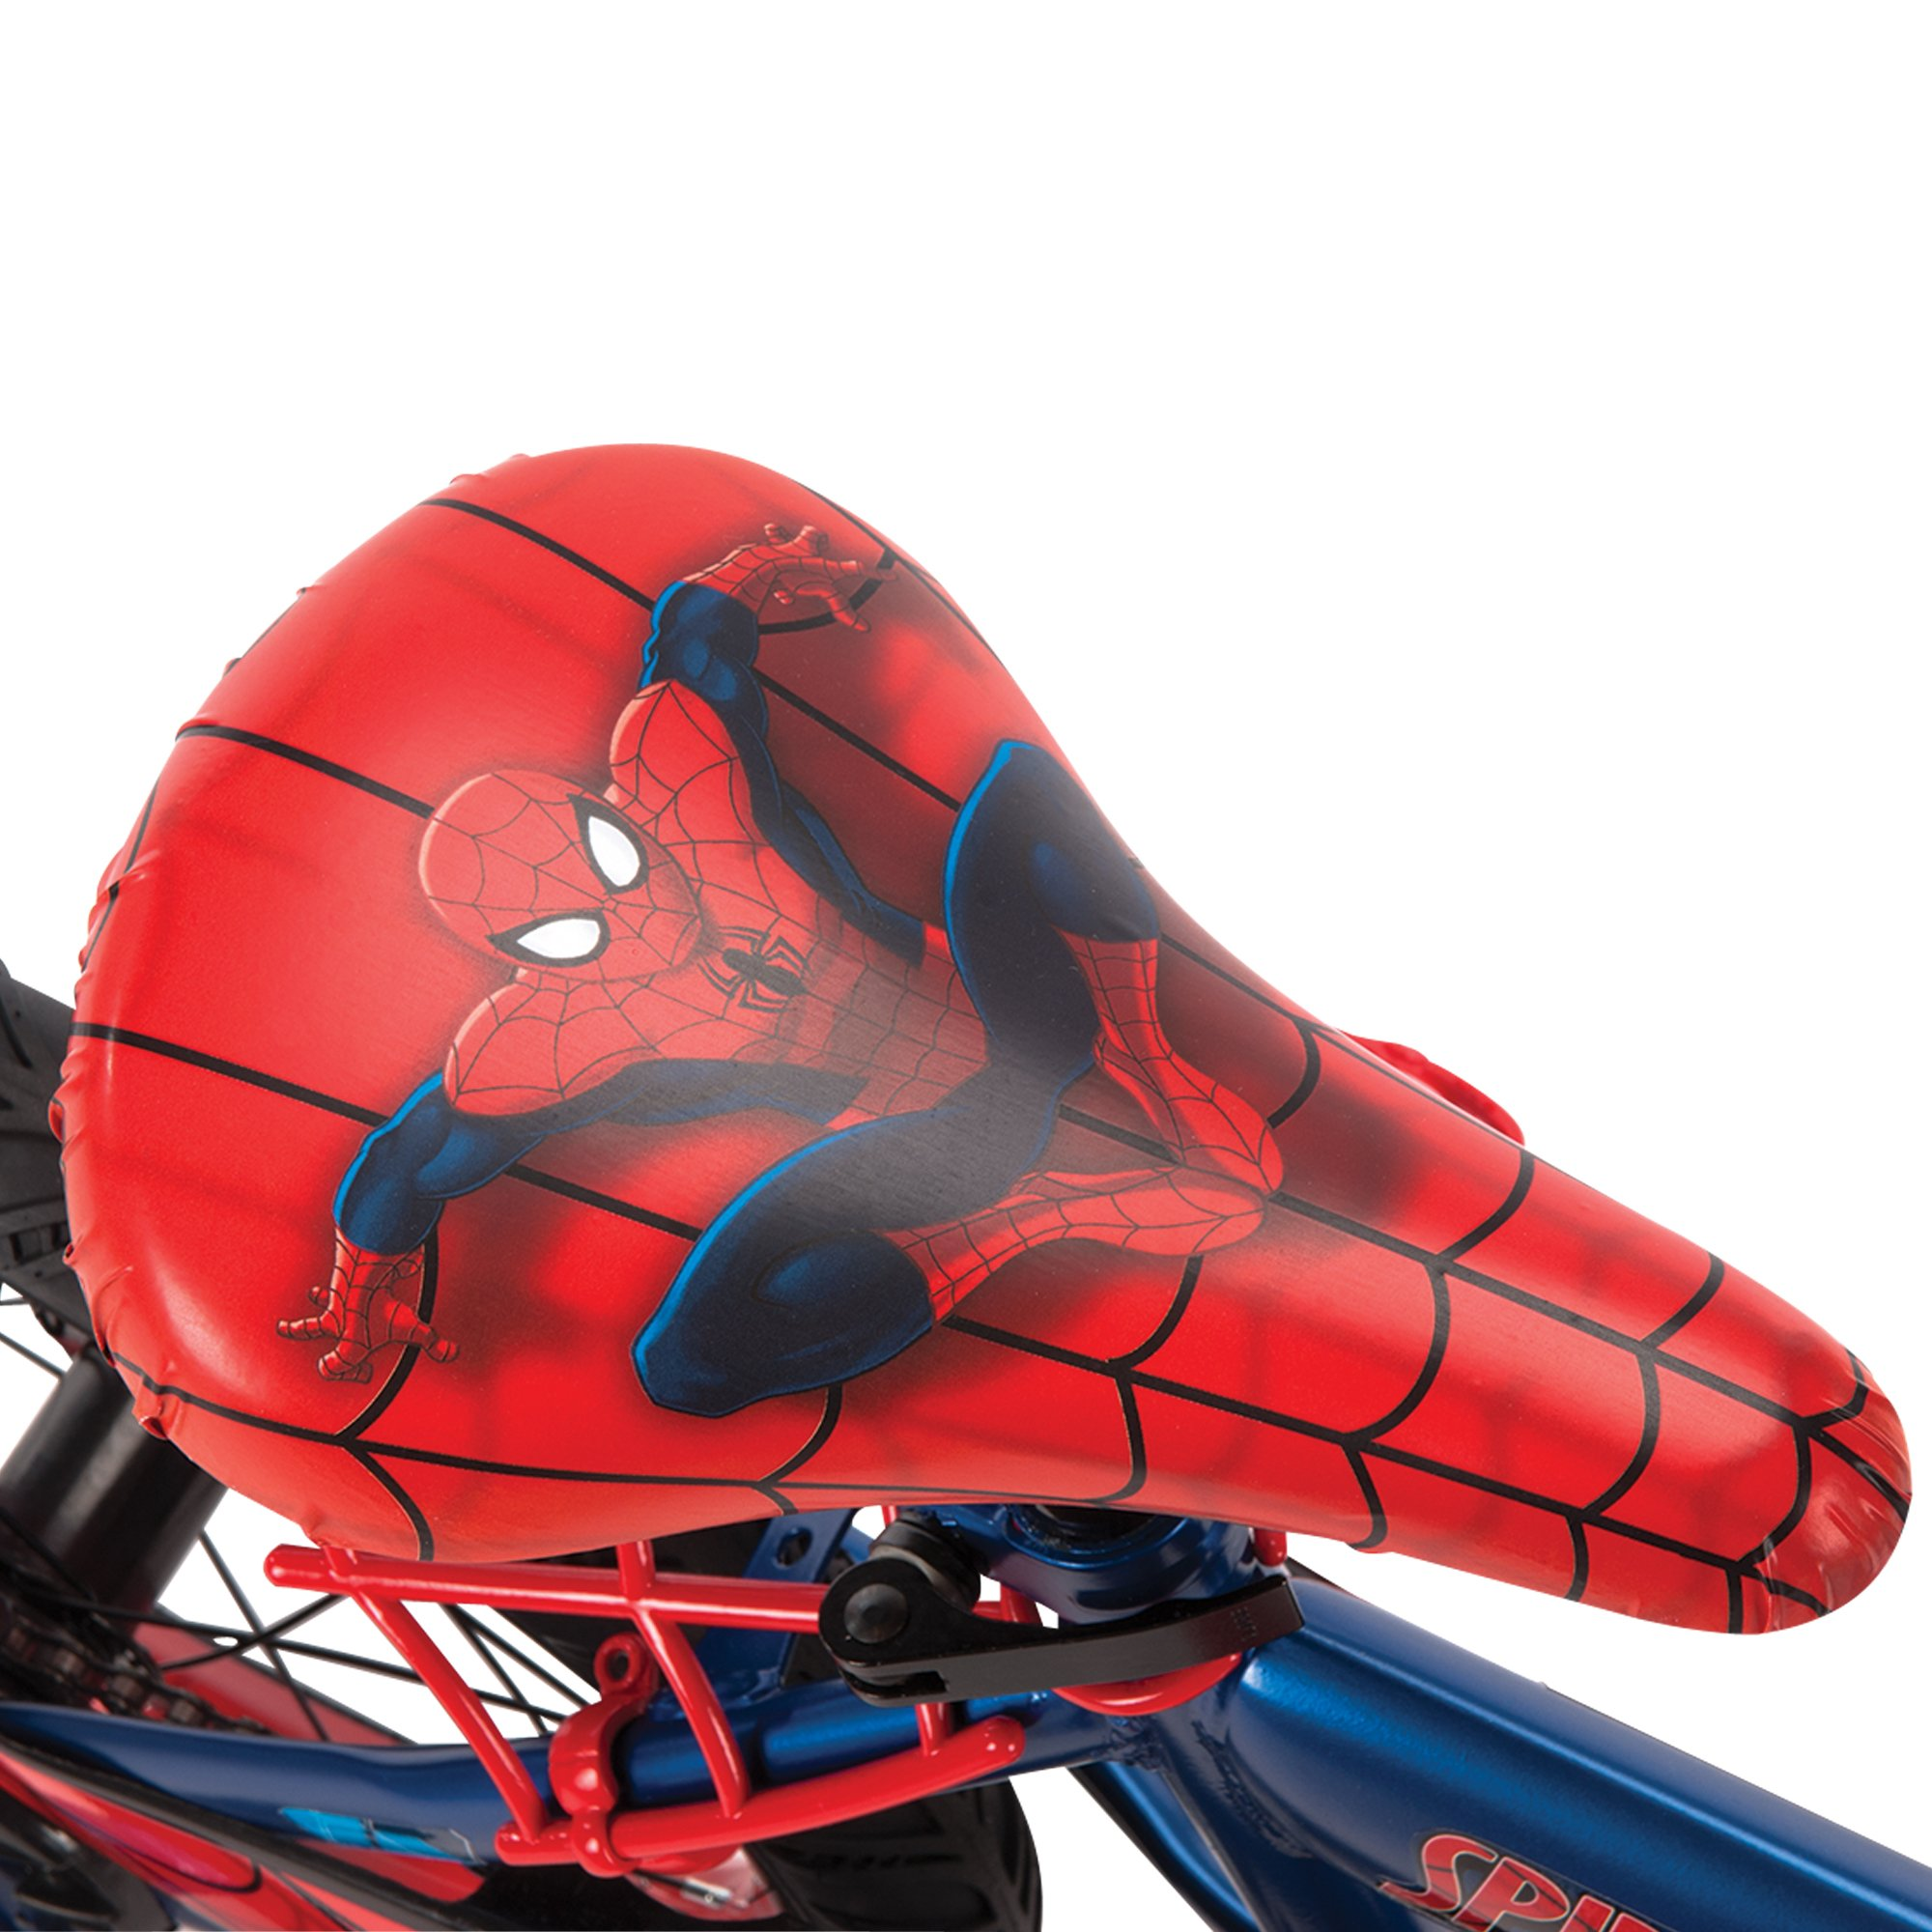 16'' Marvel Spider-Man Bike by Huffy, Ages 4-6, Height 42-48'' by Huffy (Image #6)